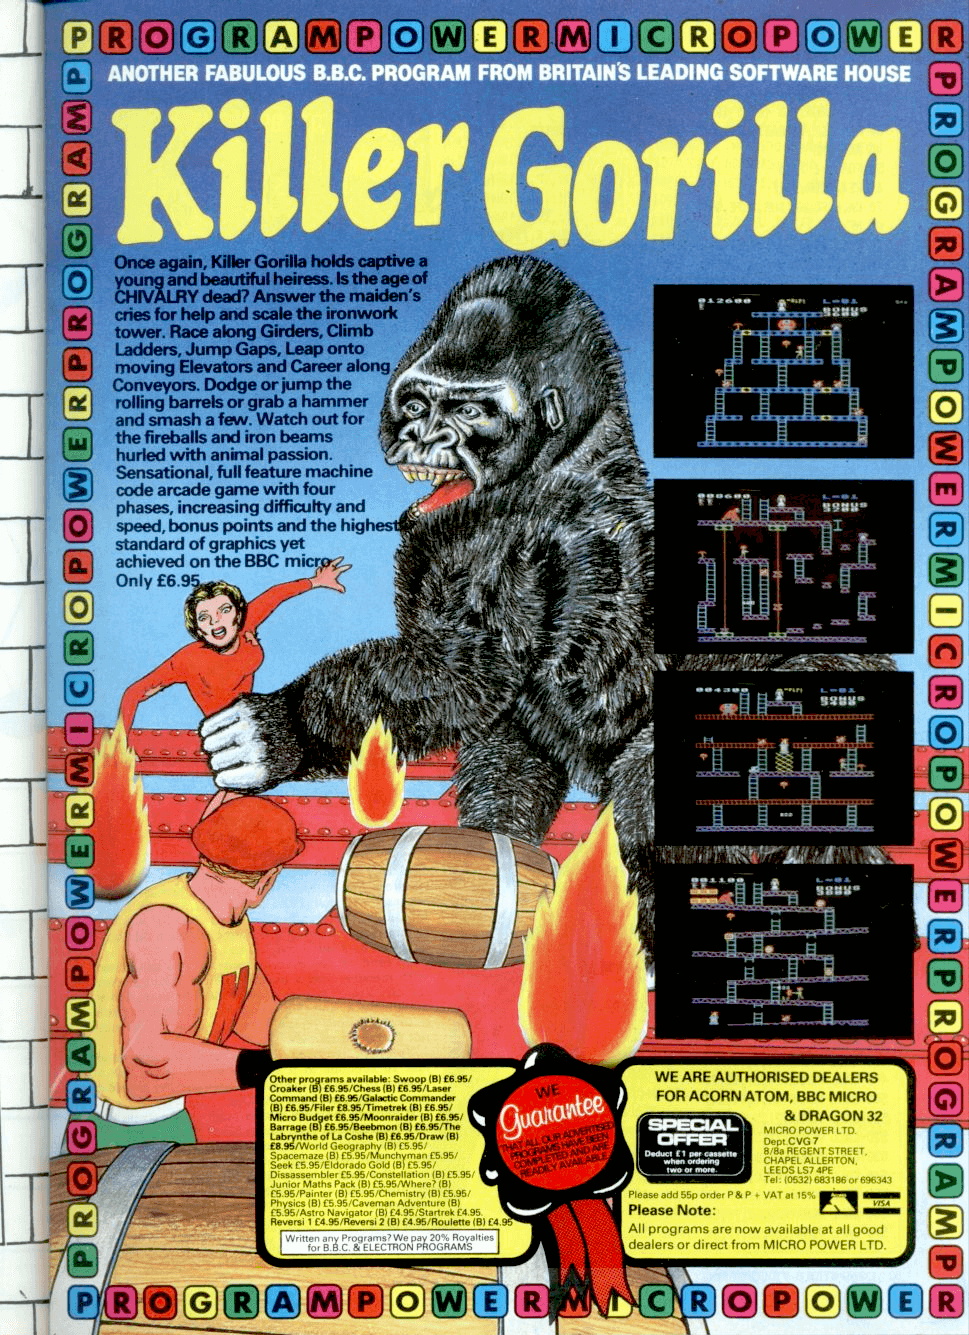 Killer Gorilla is a clone of Nintendo's Donkey Kong arcade game  https://imgchest.com/p/3qe4gdvj4j2  **Description**  Killer Gorilla is a four stage platform game set on a building construction site. Stages consist of girders, ladders, conveyor belts and elevators. The object of stages one, two and three is to reach the top of the screen where your girlfriend is guarded by the eponymous Killer Gorilla.  On stage four the objective is to remove the rivets from the girders, causing the top of the building to collapse and the gorilla to fall. On all stages, items belonging to your girlfriend can be collected for extra points. When stage four is completed, play loops back to stage one.  **Trivia**   [Adrian] Stephens wrote Killer Gorilla at the age of 17 after buying a magazine with screenshots of Donkey Kong. He was paid 400 pounds for the game.[3] Stephens wrote two other games for Micro Power: Escape From Moonbase Alpha and Mr EE, a clone of Universal's Mr. Do!.  **Legacy**   The game appeared on a number of compilations including 10 Computer Hits (1985), Micropower Magic 2 (1986) and Superior Software's highly regarded Play It Again Sam 3 (1988). PIAS 3 also included a game called Killer Gorilla 2 but this was actually a re-titled early Superior Software game.   Based on Donkey Kong Junior and originally released as Zany Kong Junior in 1984, it was soon withdrawn after a cease and desist from Atarisoft, who owned the home computer rights to the original game.   Ironically, Atarisoft had commissioned Adrian Stephens to officially port Donkey Kong Junior to the BBC Micro after seeing Killer Gorilla, but the game was never released as Atarisoft decided to abandon the BBC platform.